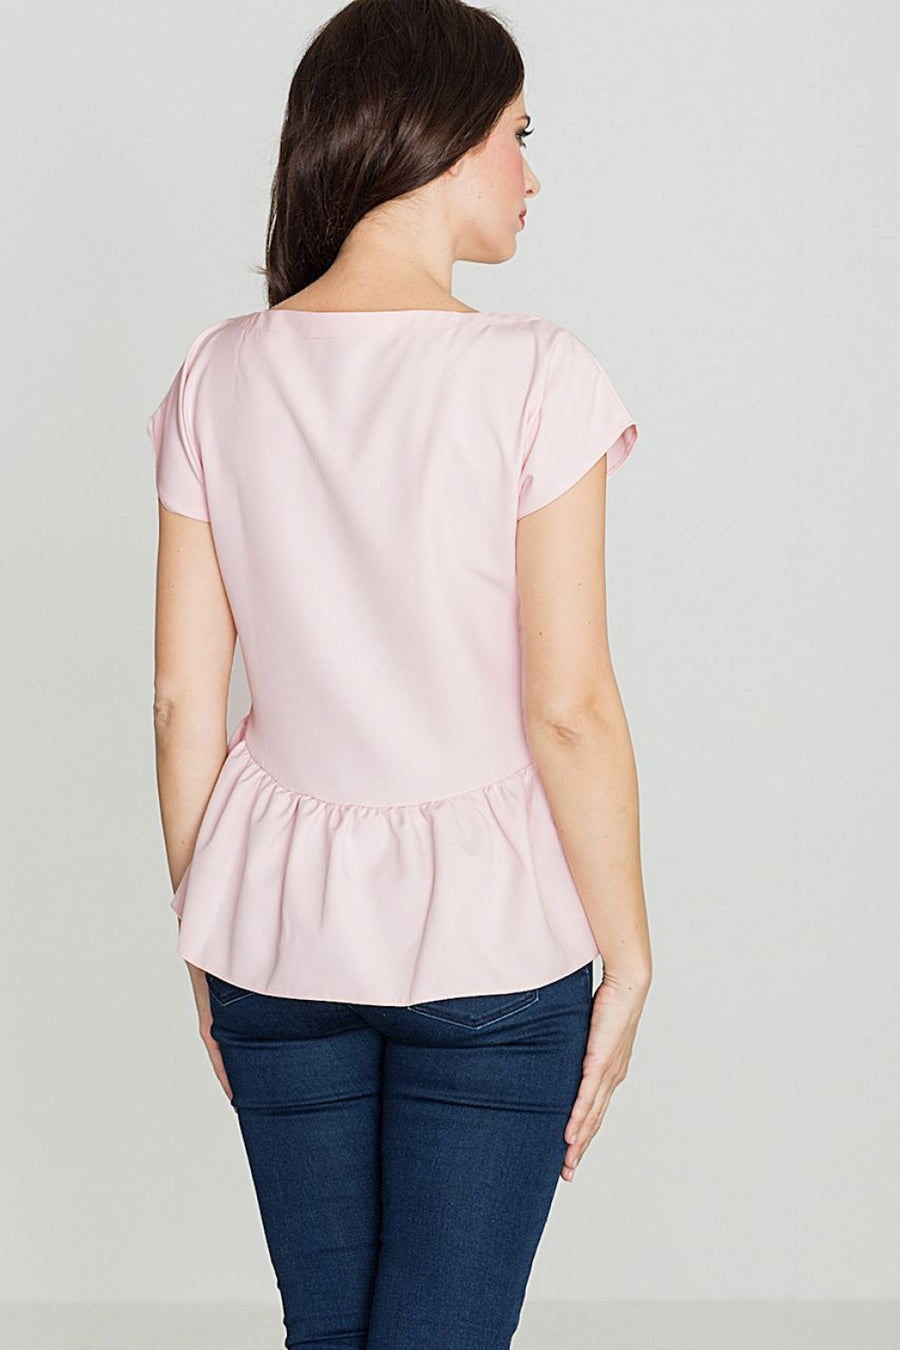 Blouse model 114304 Lenitif